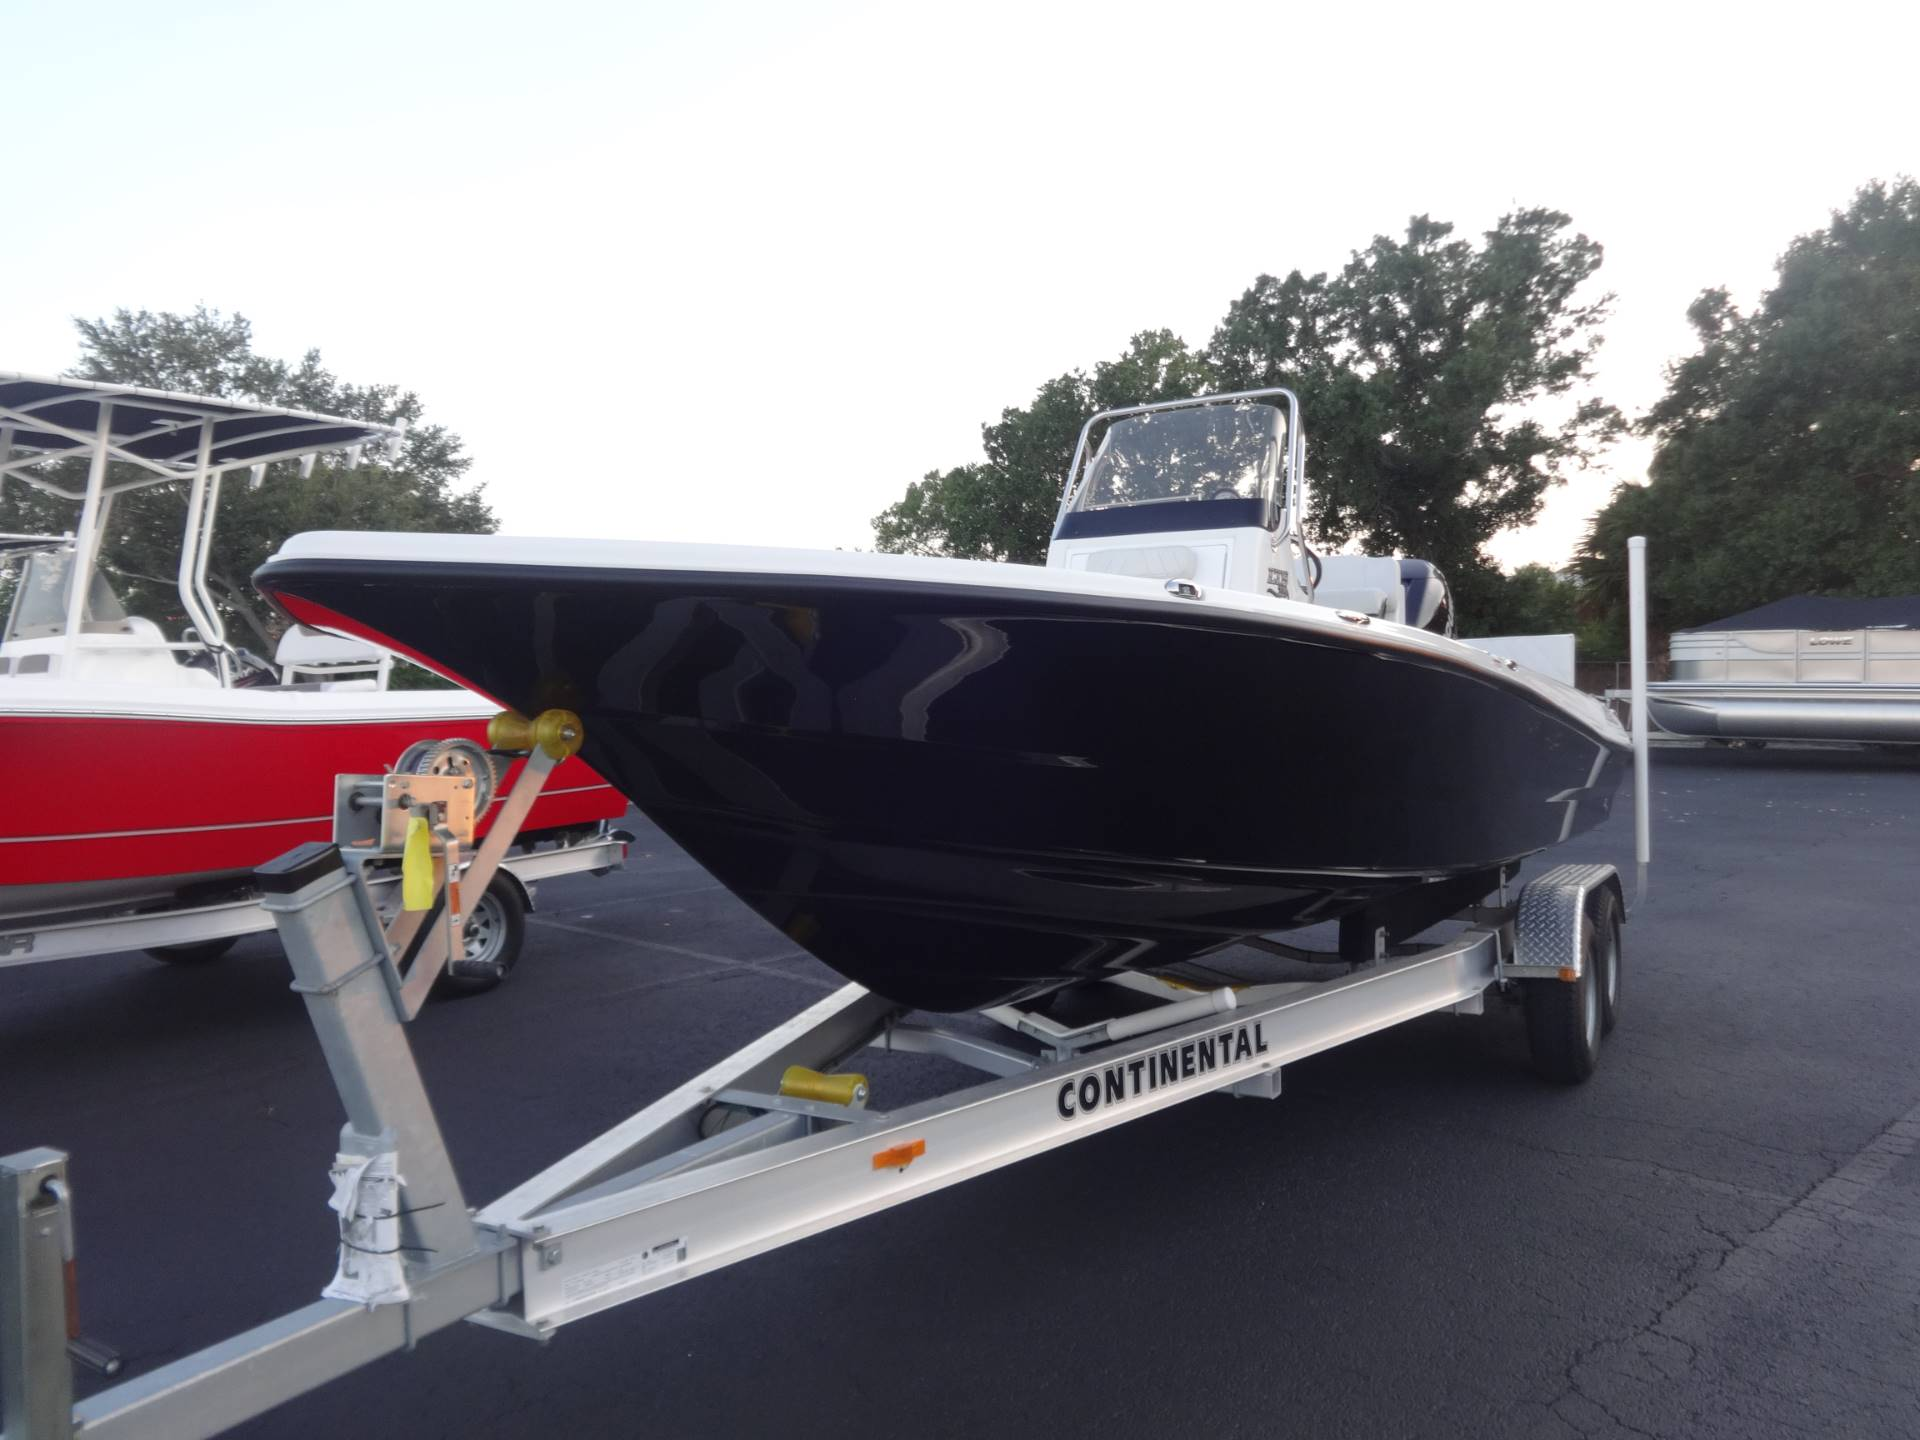 2018 Triton 220 LTS PRO in Holiday, Florida - Photo 4